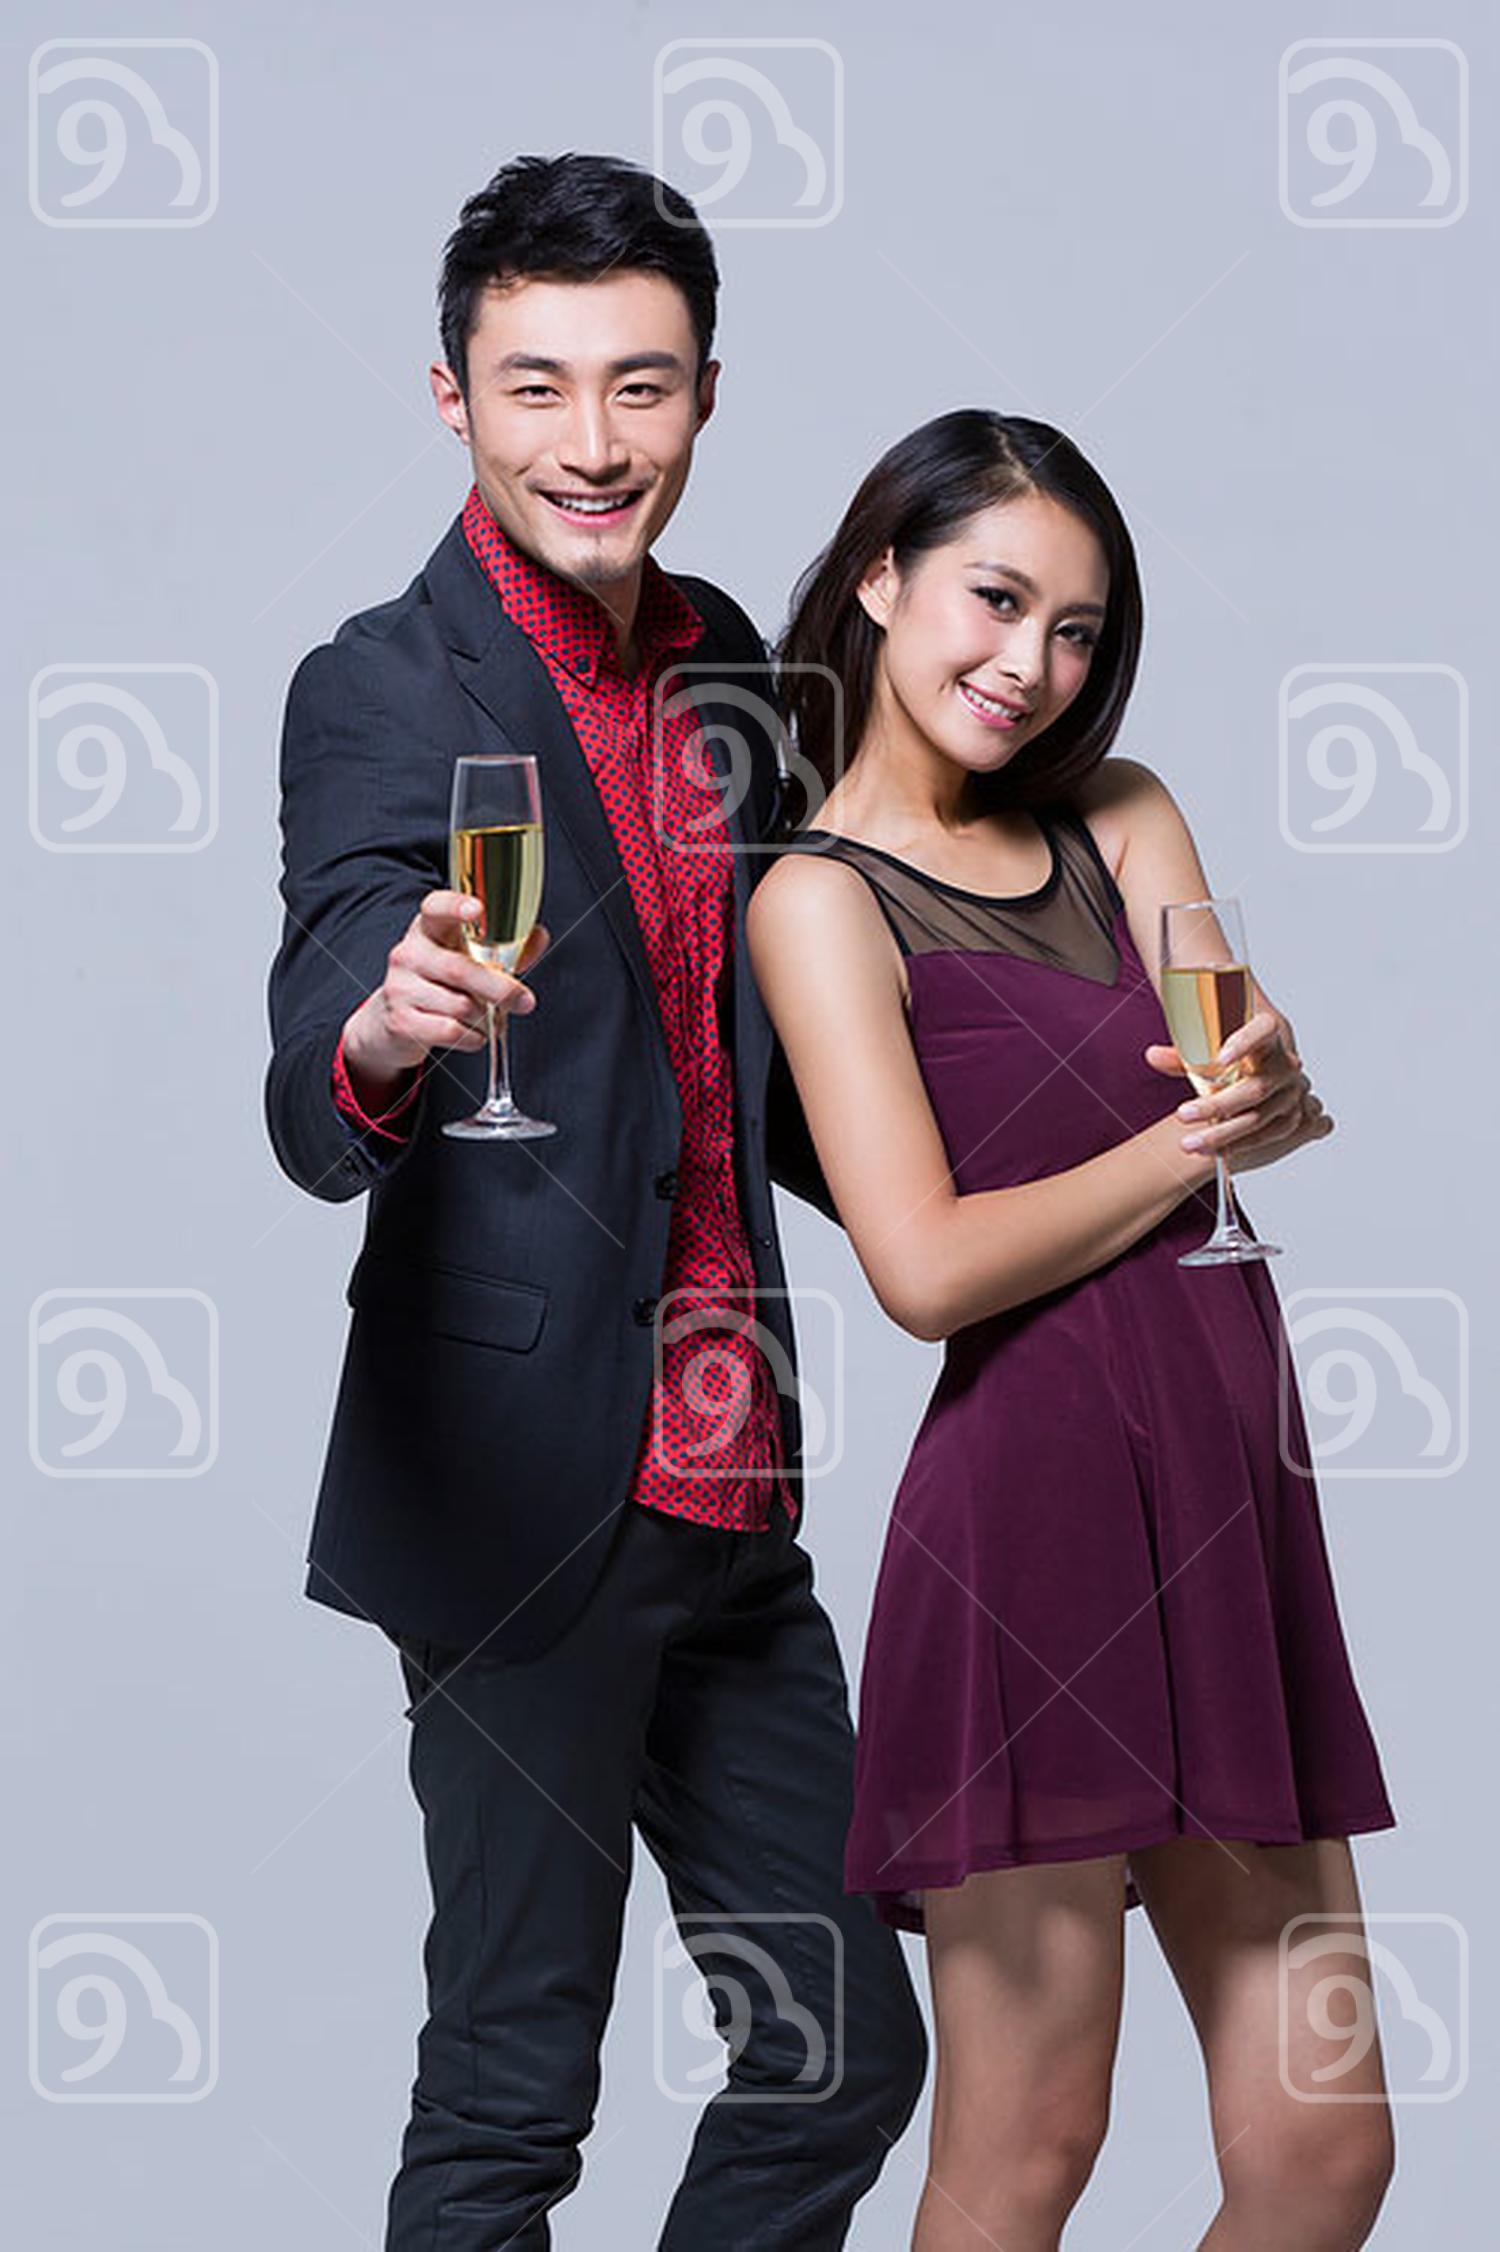 Happy young Chinese couple at a party